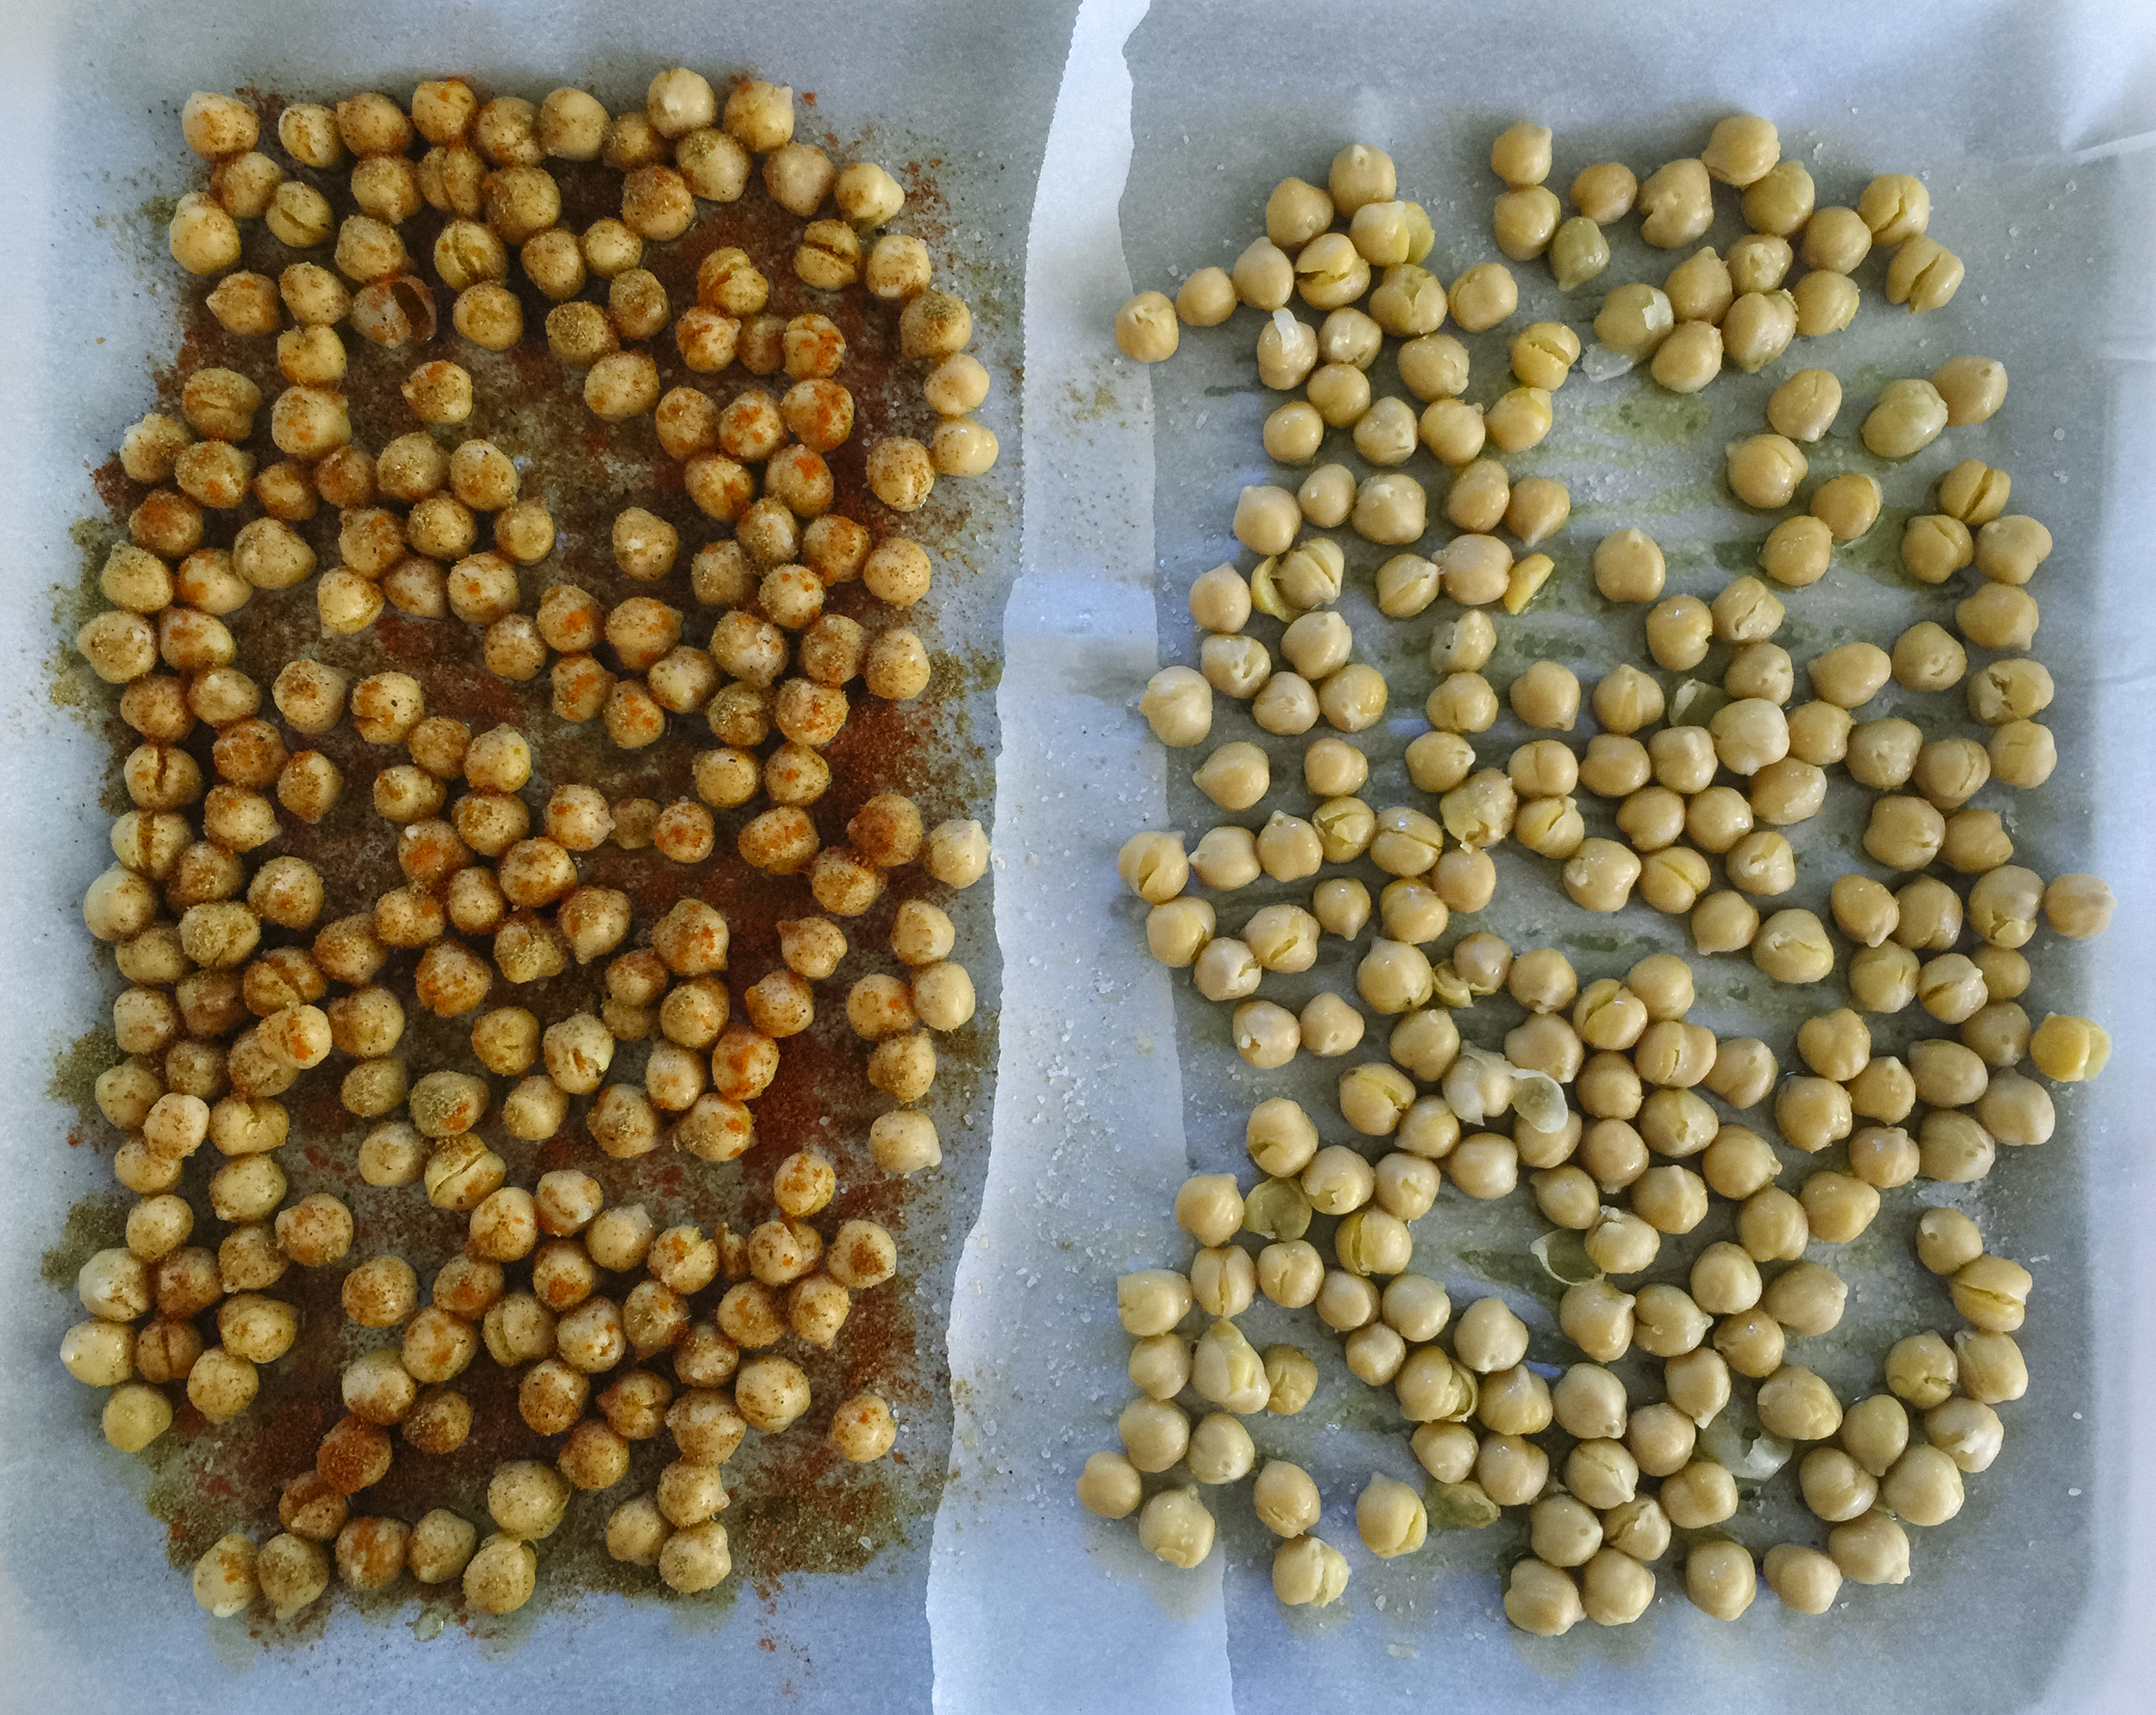 Spicy Roasted Chickpeas on the left; Salt & Vinegar Chickpeas on the right.